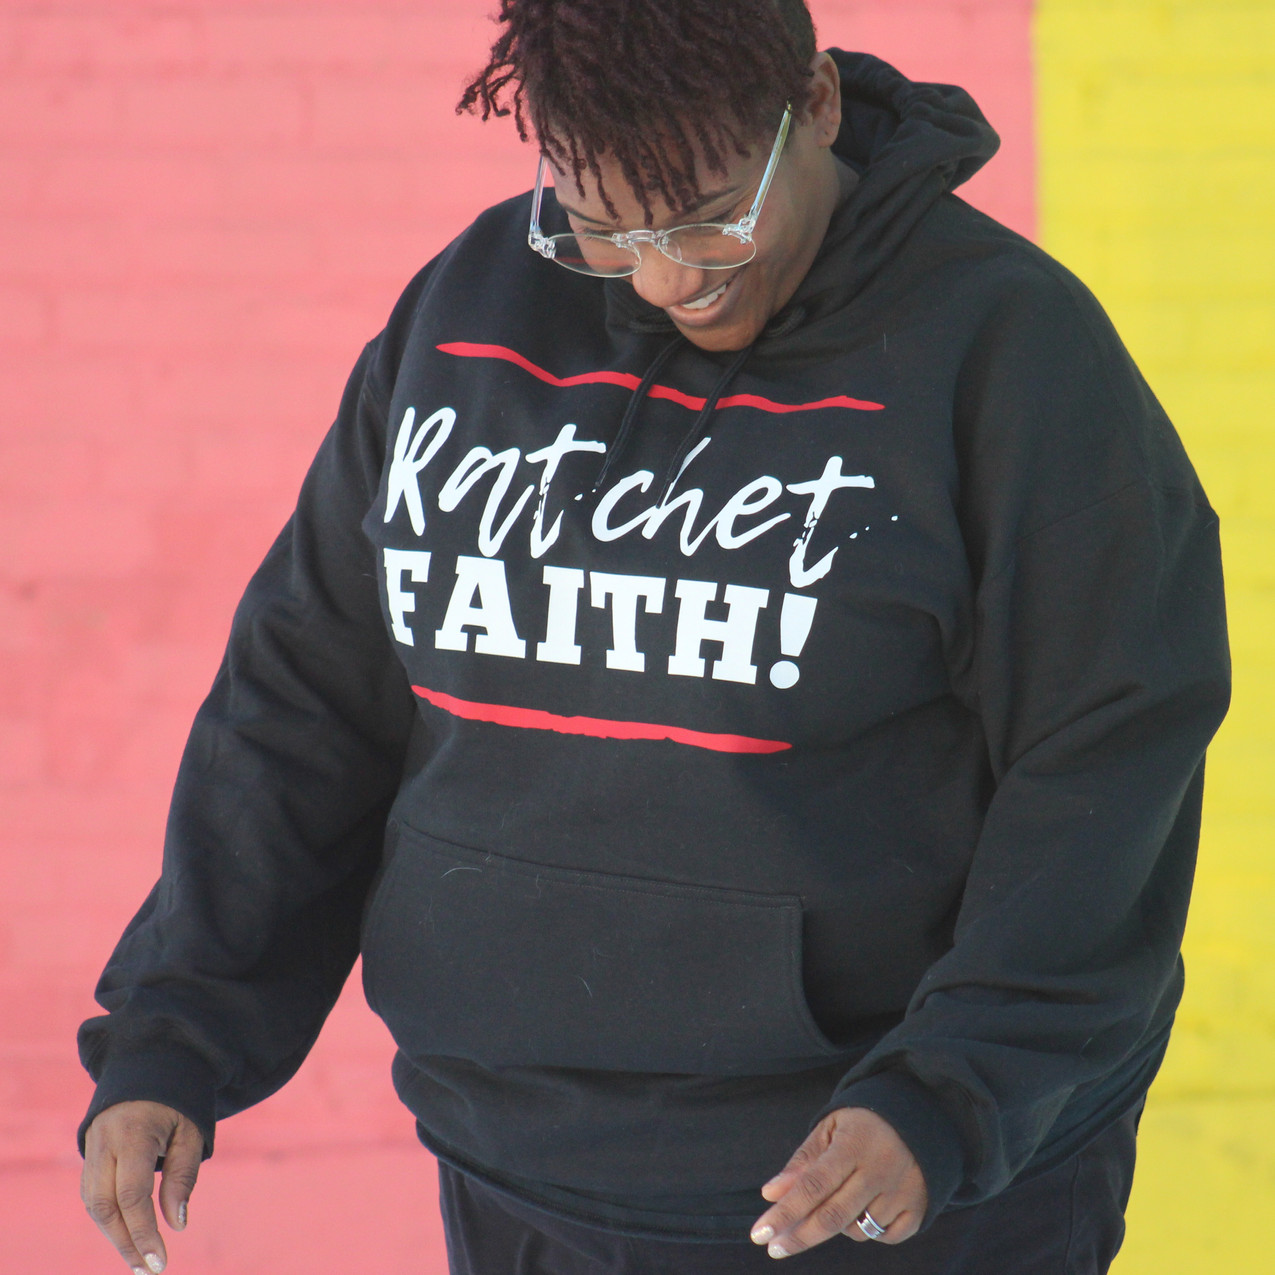 ratchet faith hoodie|hat|t-shirts